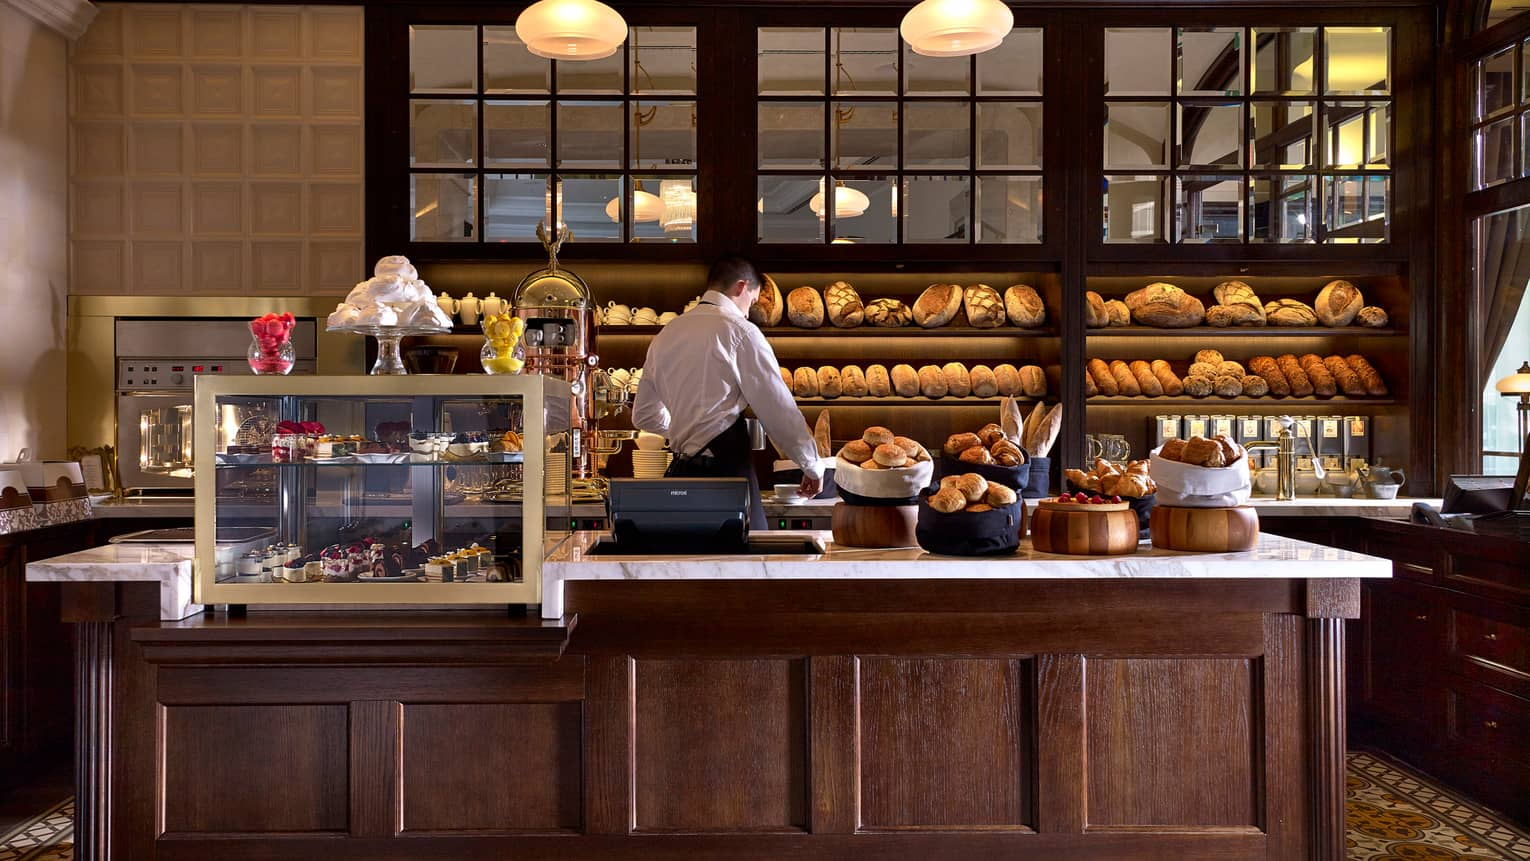 KOLLÁZS Brasserie & Bar bakery counter with breads, pastries, staff in front of bread display